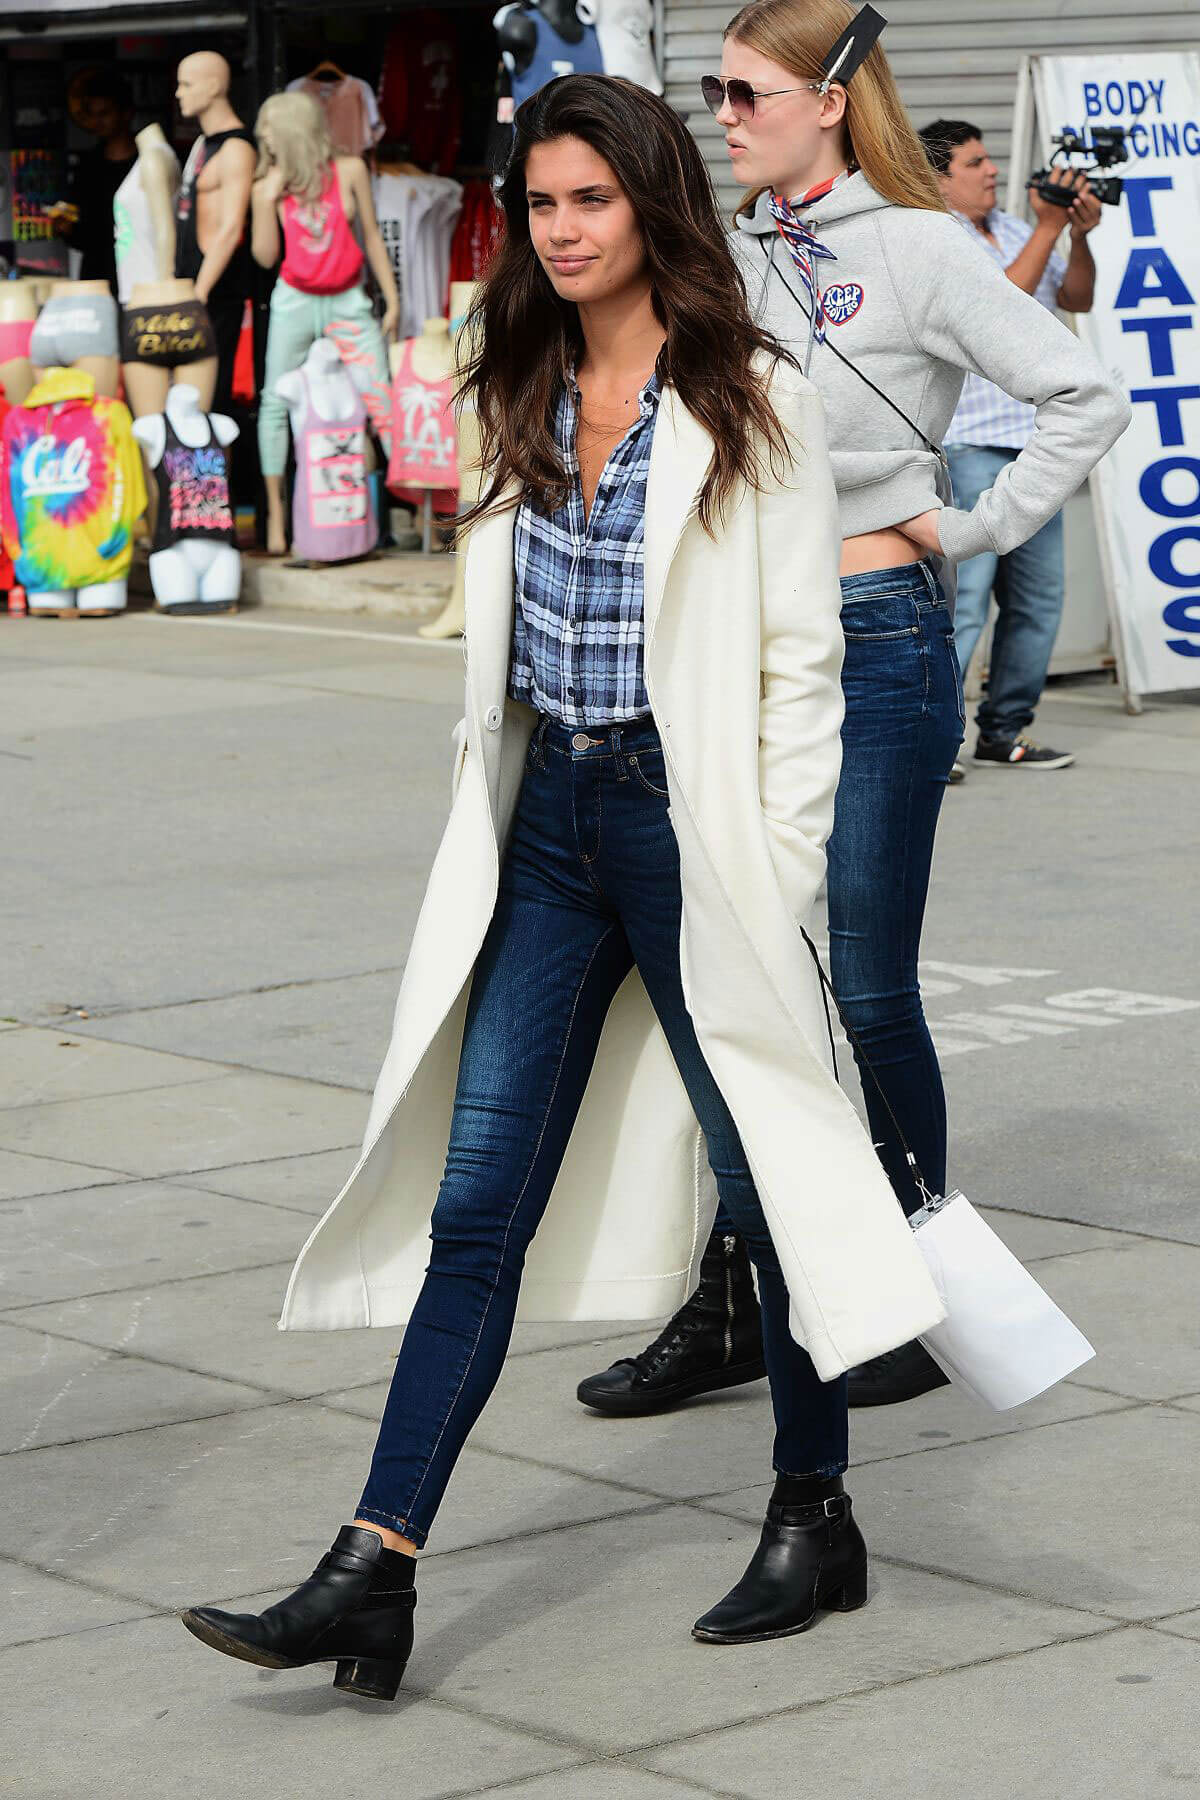 Sara Sampaio Arrives at Tommy Hilfiger Fashion Show in Venice